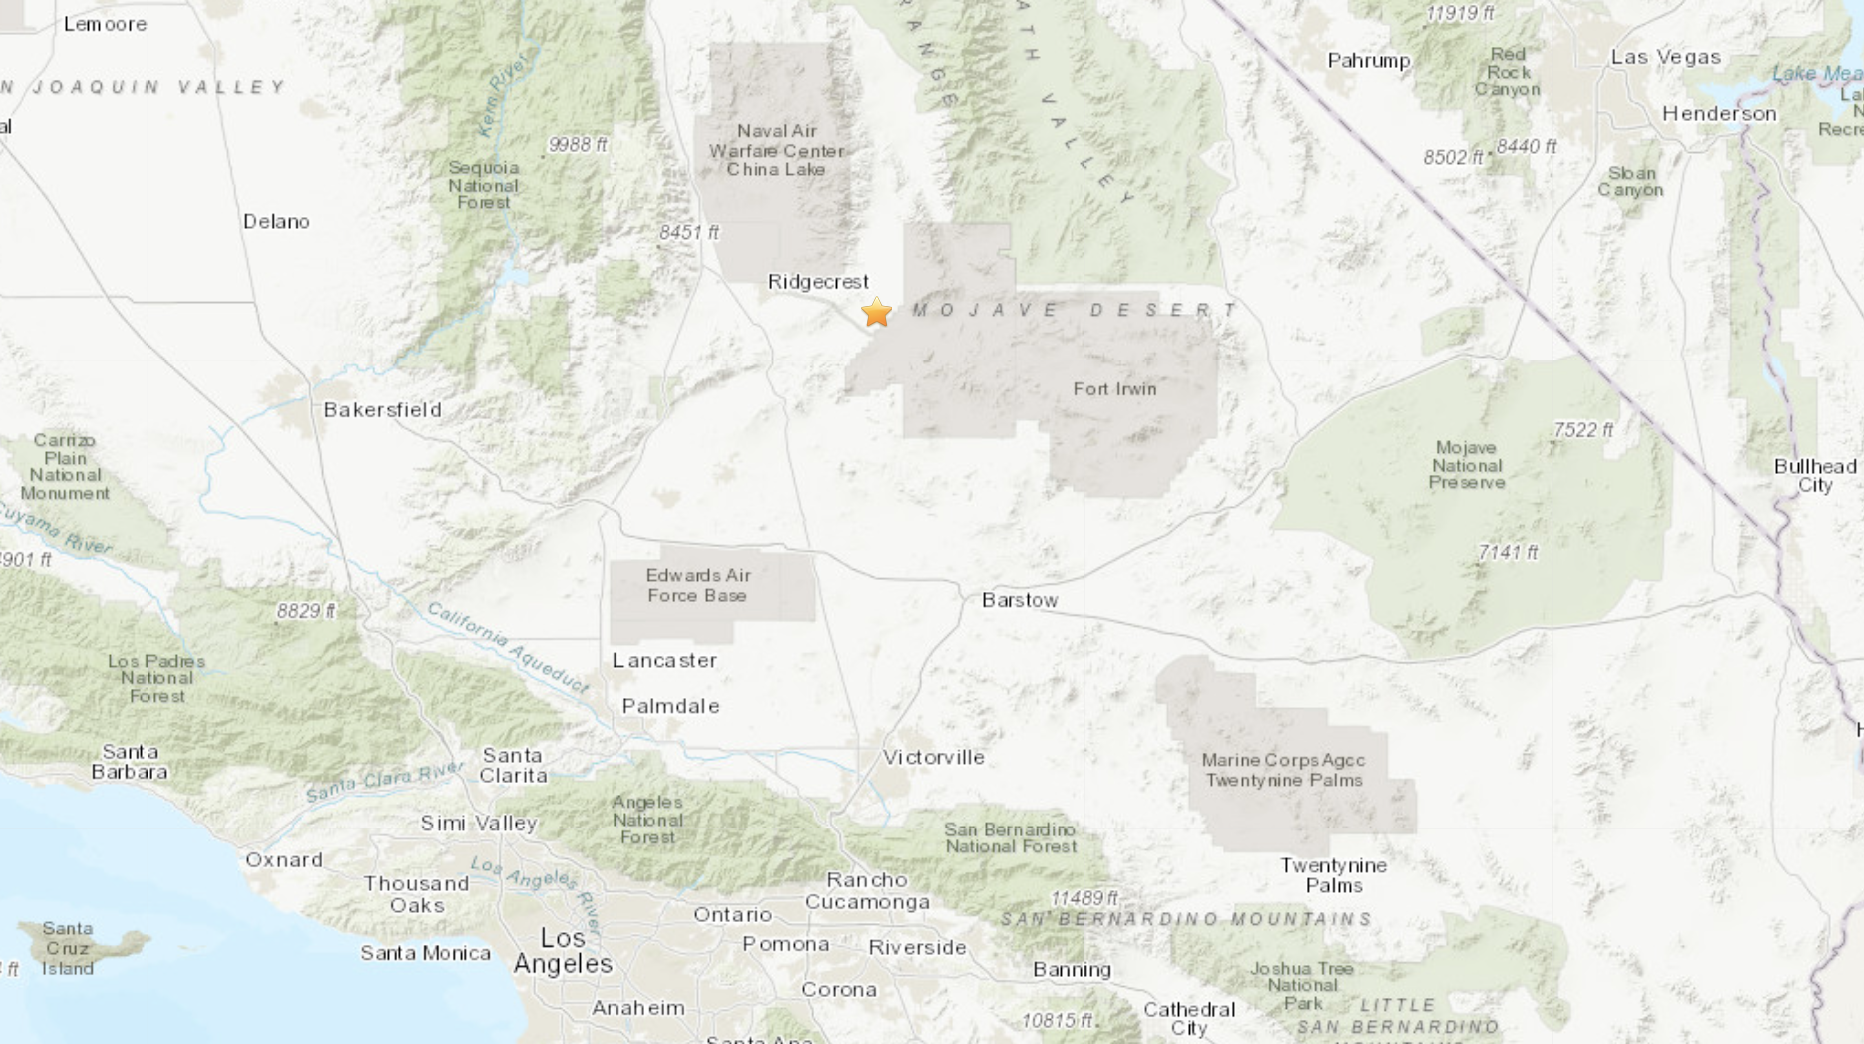 A magnitude 4.0 earthquake rattled the Mojave Desert in Southern California on Feb. 12, 2021, according to the U.S. Geological Survey.